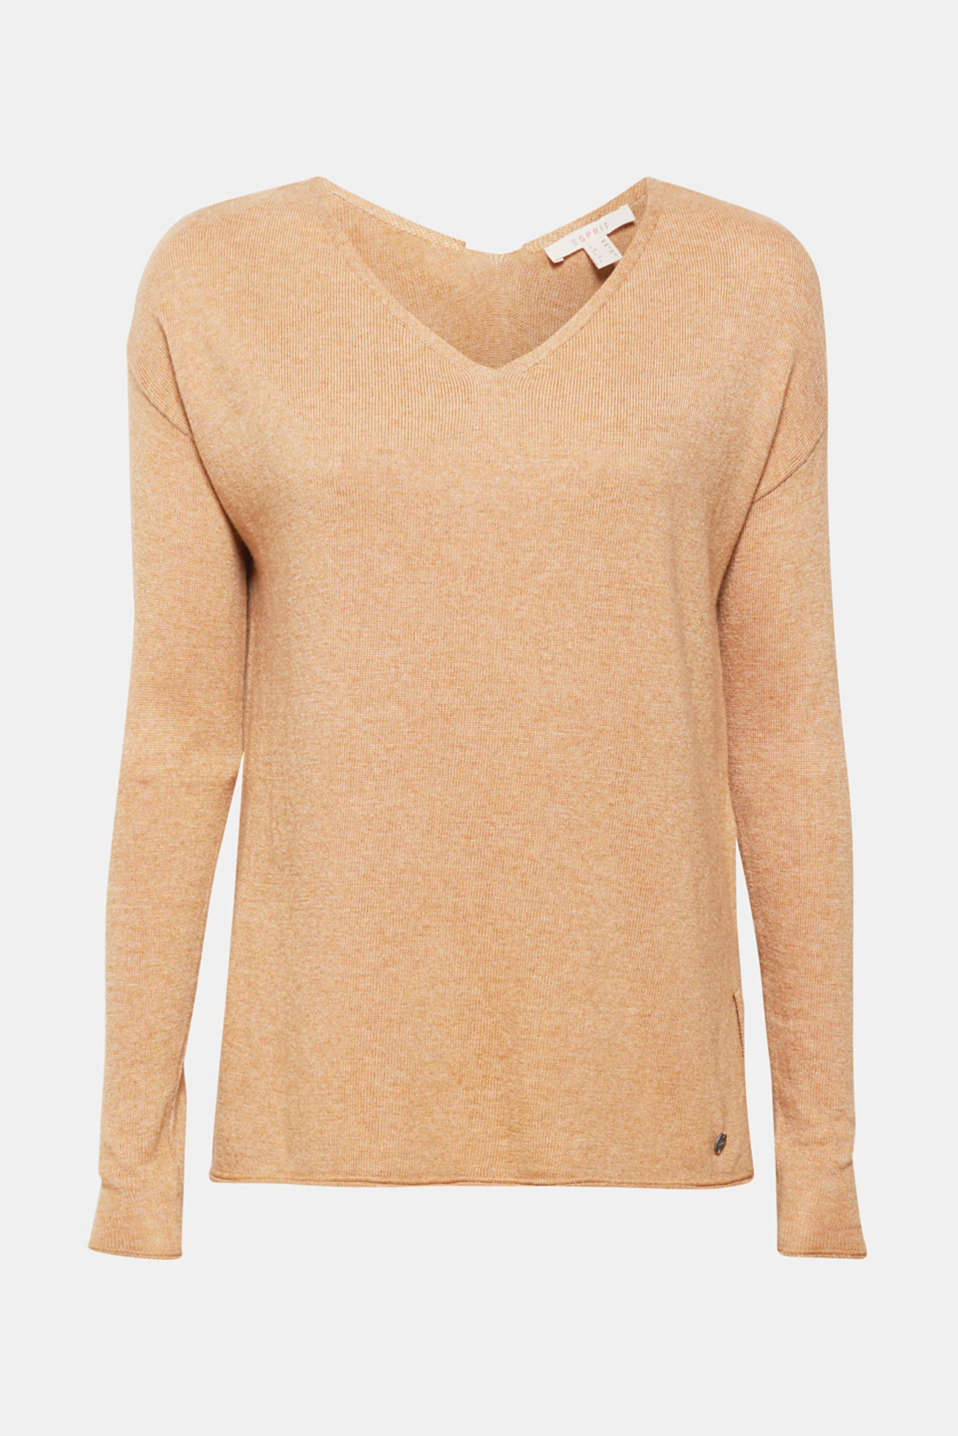 This jumper provides a luxurious touch with its soft cashmere blend and casual rolled edges and V-neckline.